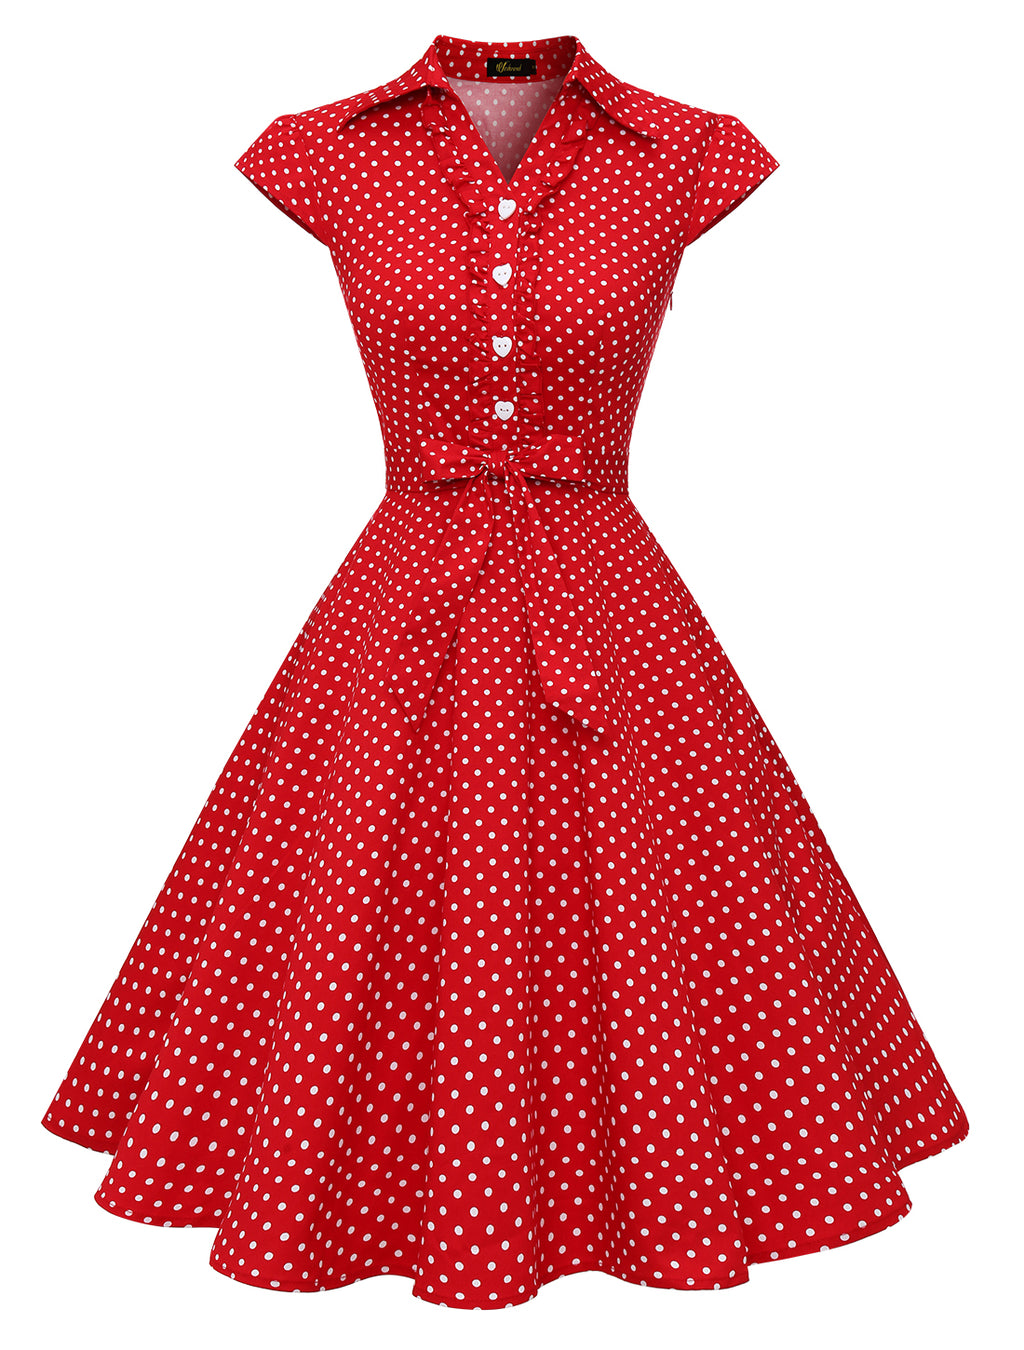 Red Black Dot/Red White Dot Women's 1950s Retro Rockabilly Bow-knot Dress Wedtrend Cap Sleeve Vintage Swing Dress